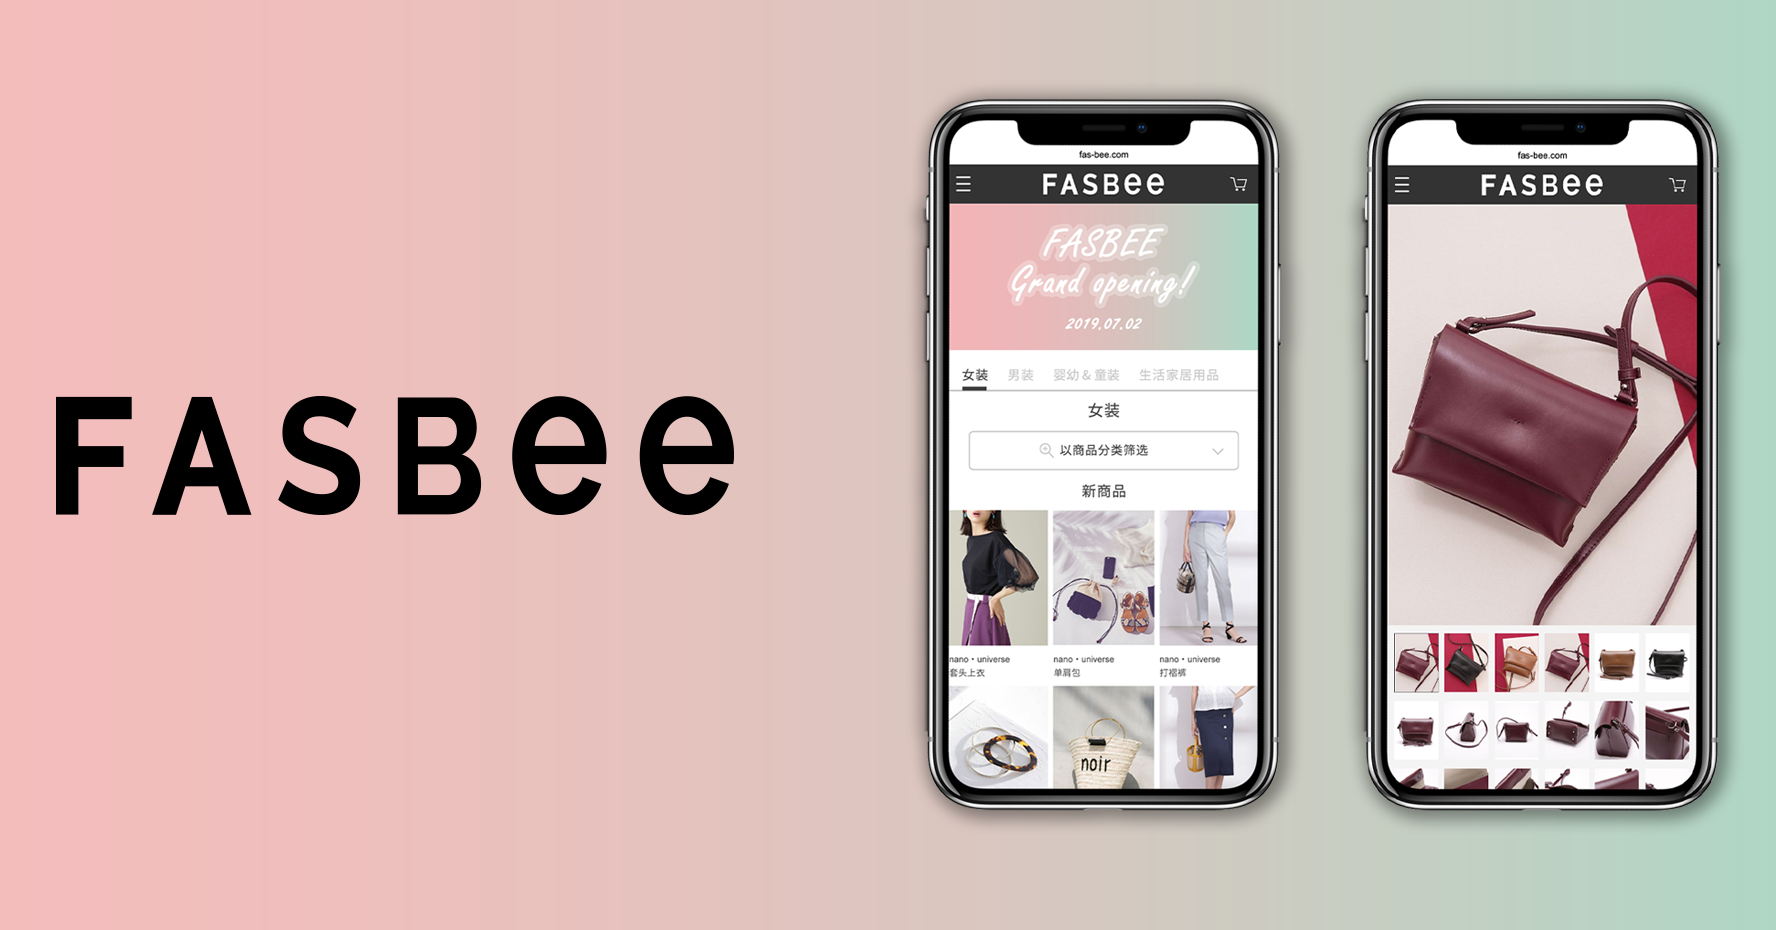 Feature phone, Smartphone, Mobile Phone Accessories, Cellular network, Text messaging, Product, Product design, Font, Design, Brand, feature phone, Product, Mobile phone accessories, Mobile phone case, Gadget, Mobile phone, Pink, Iphone, Smartphone, Text, Font